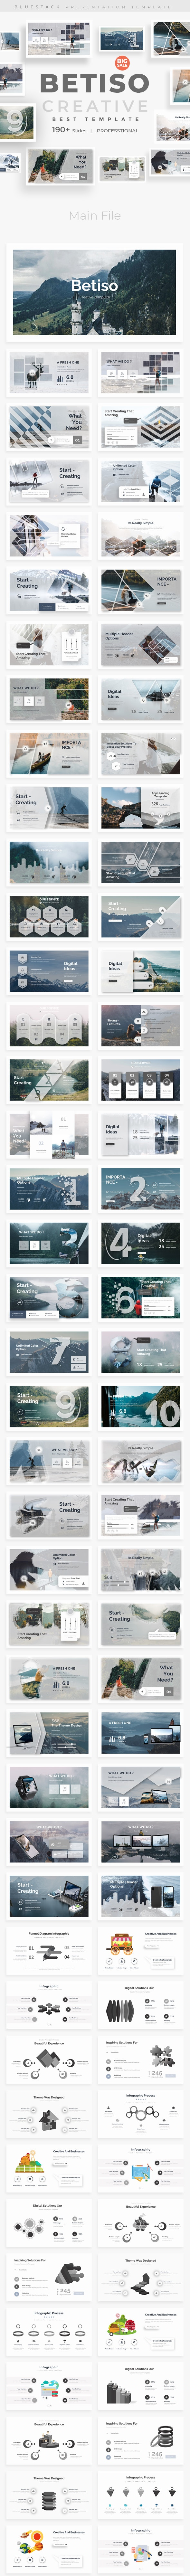 Betiso Creative Powerpoint Template - Creative PowerPoint Templates